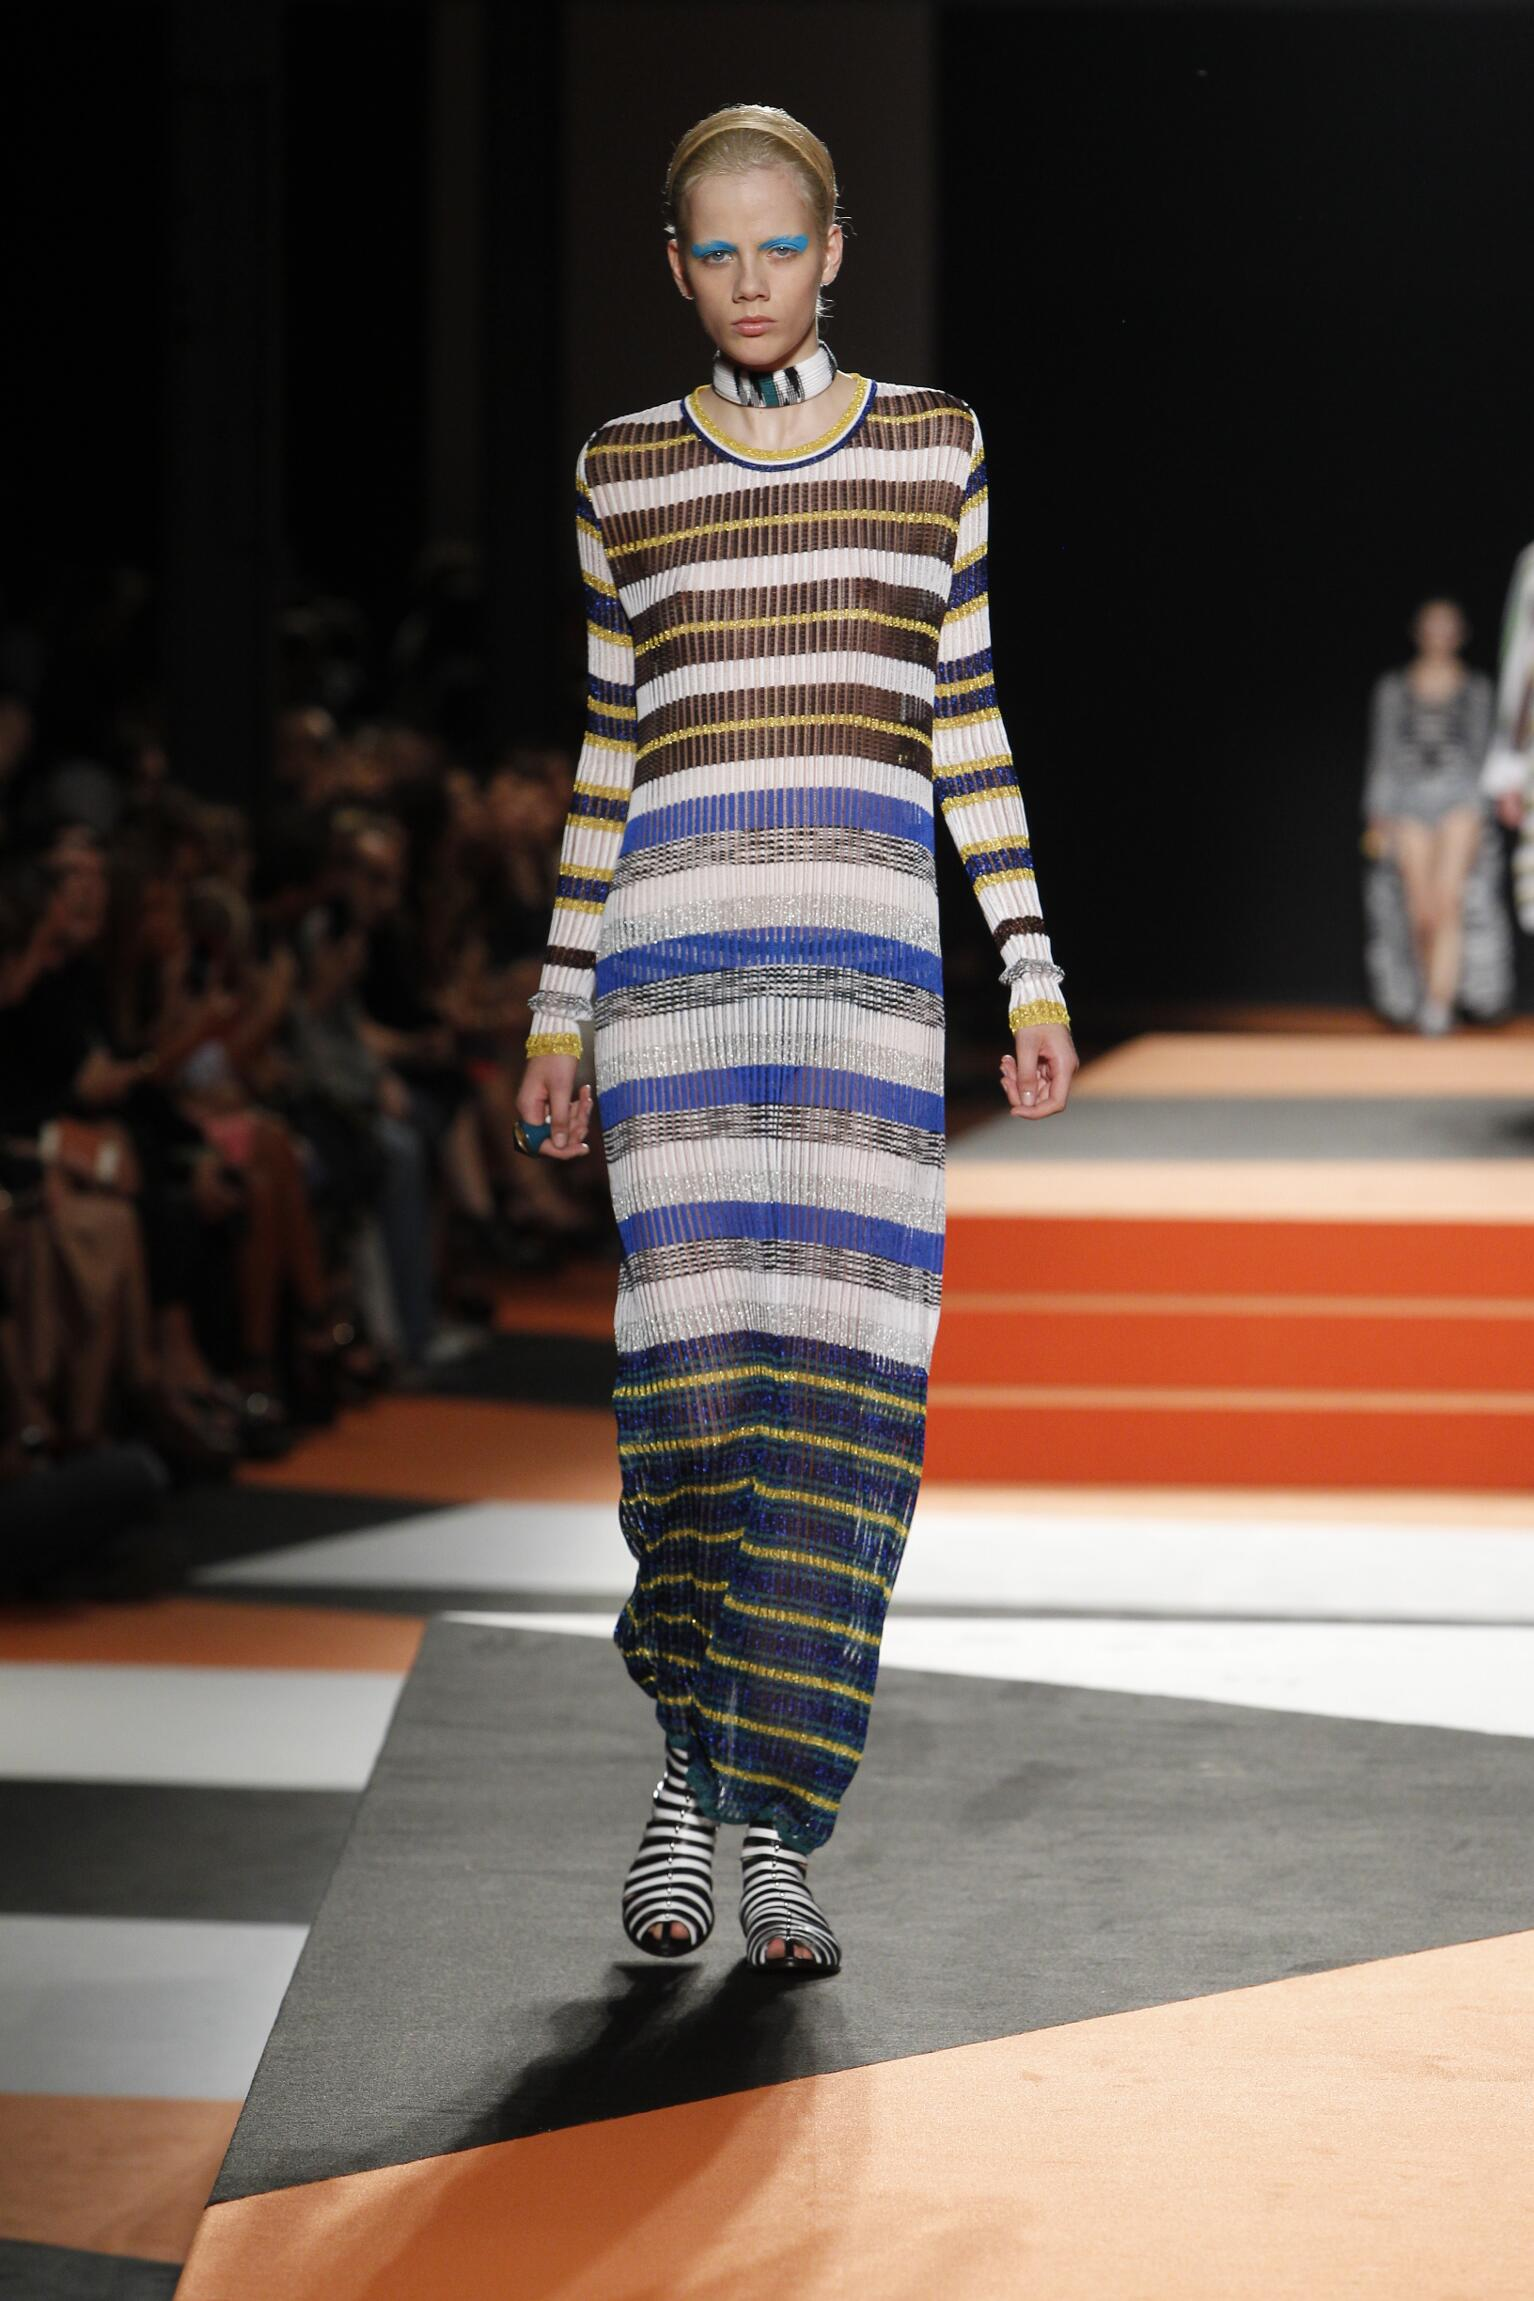 MISSONI SPRING SUMMER 2016 WOMEN'S COLLECTION